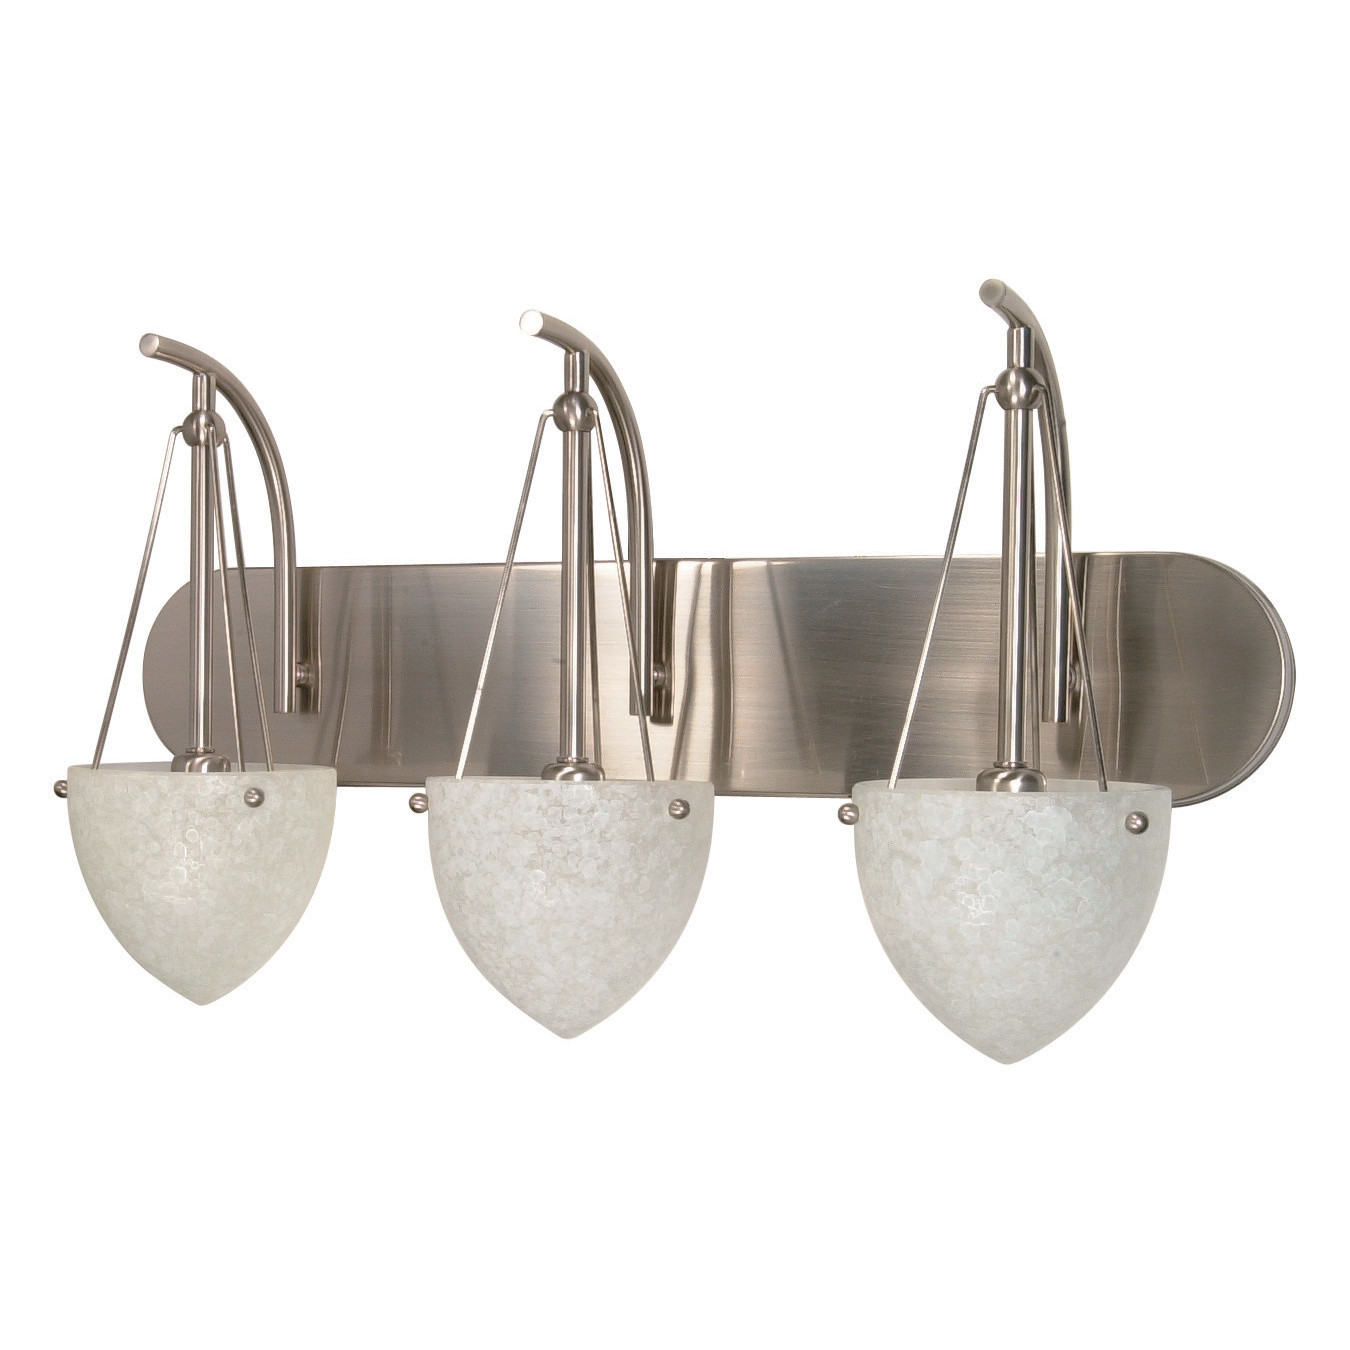 Nuvo Lighting South Beach 3 Light Vanity Light For Bathroom Lighting Ideas